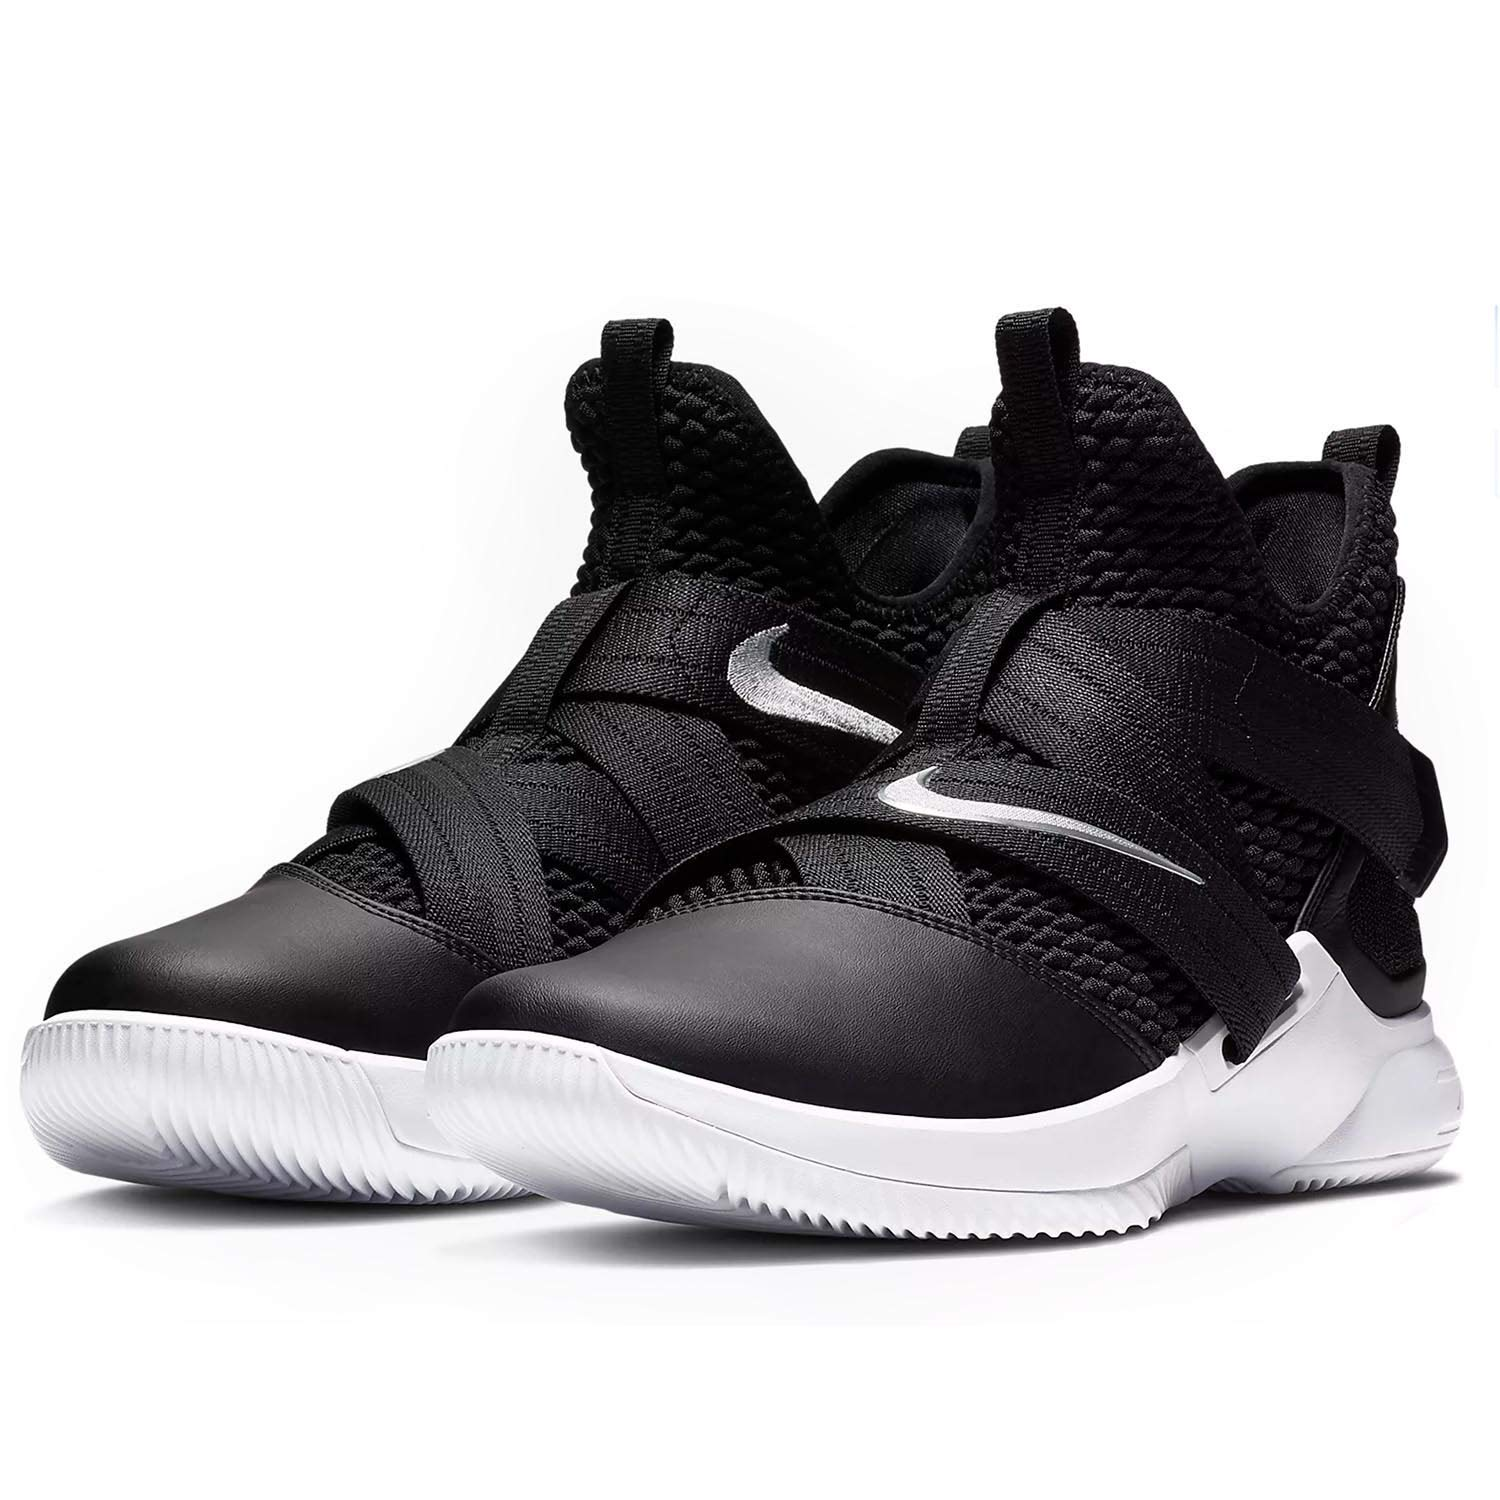 buy popular 9d68e b4487 Amazon.com   Nike Men s Lebron Soldier XII Basketball Shoe   Basketball